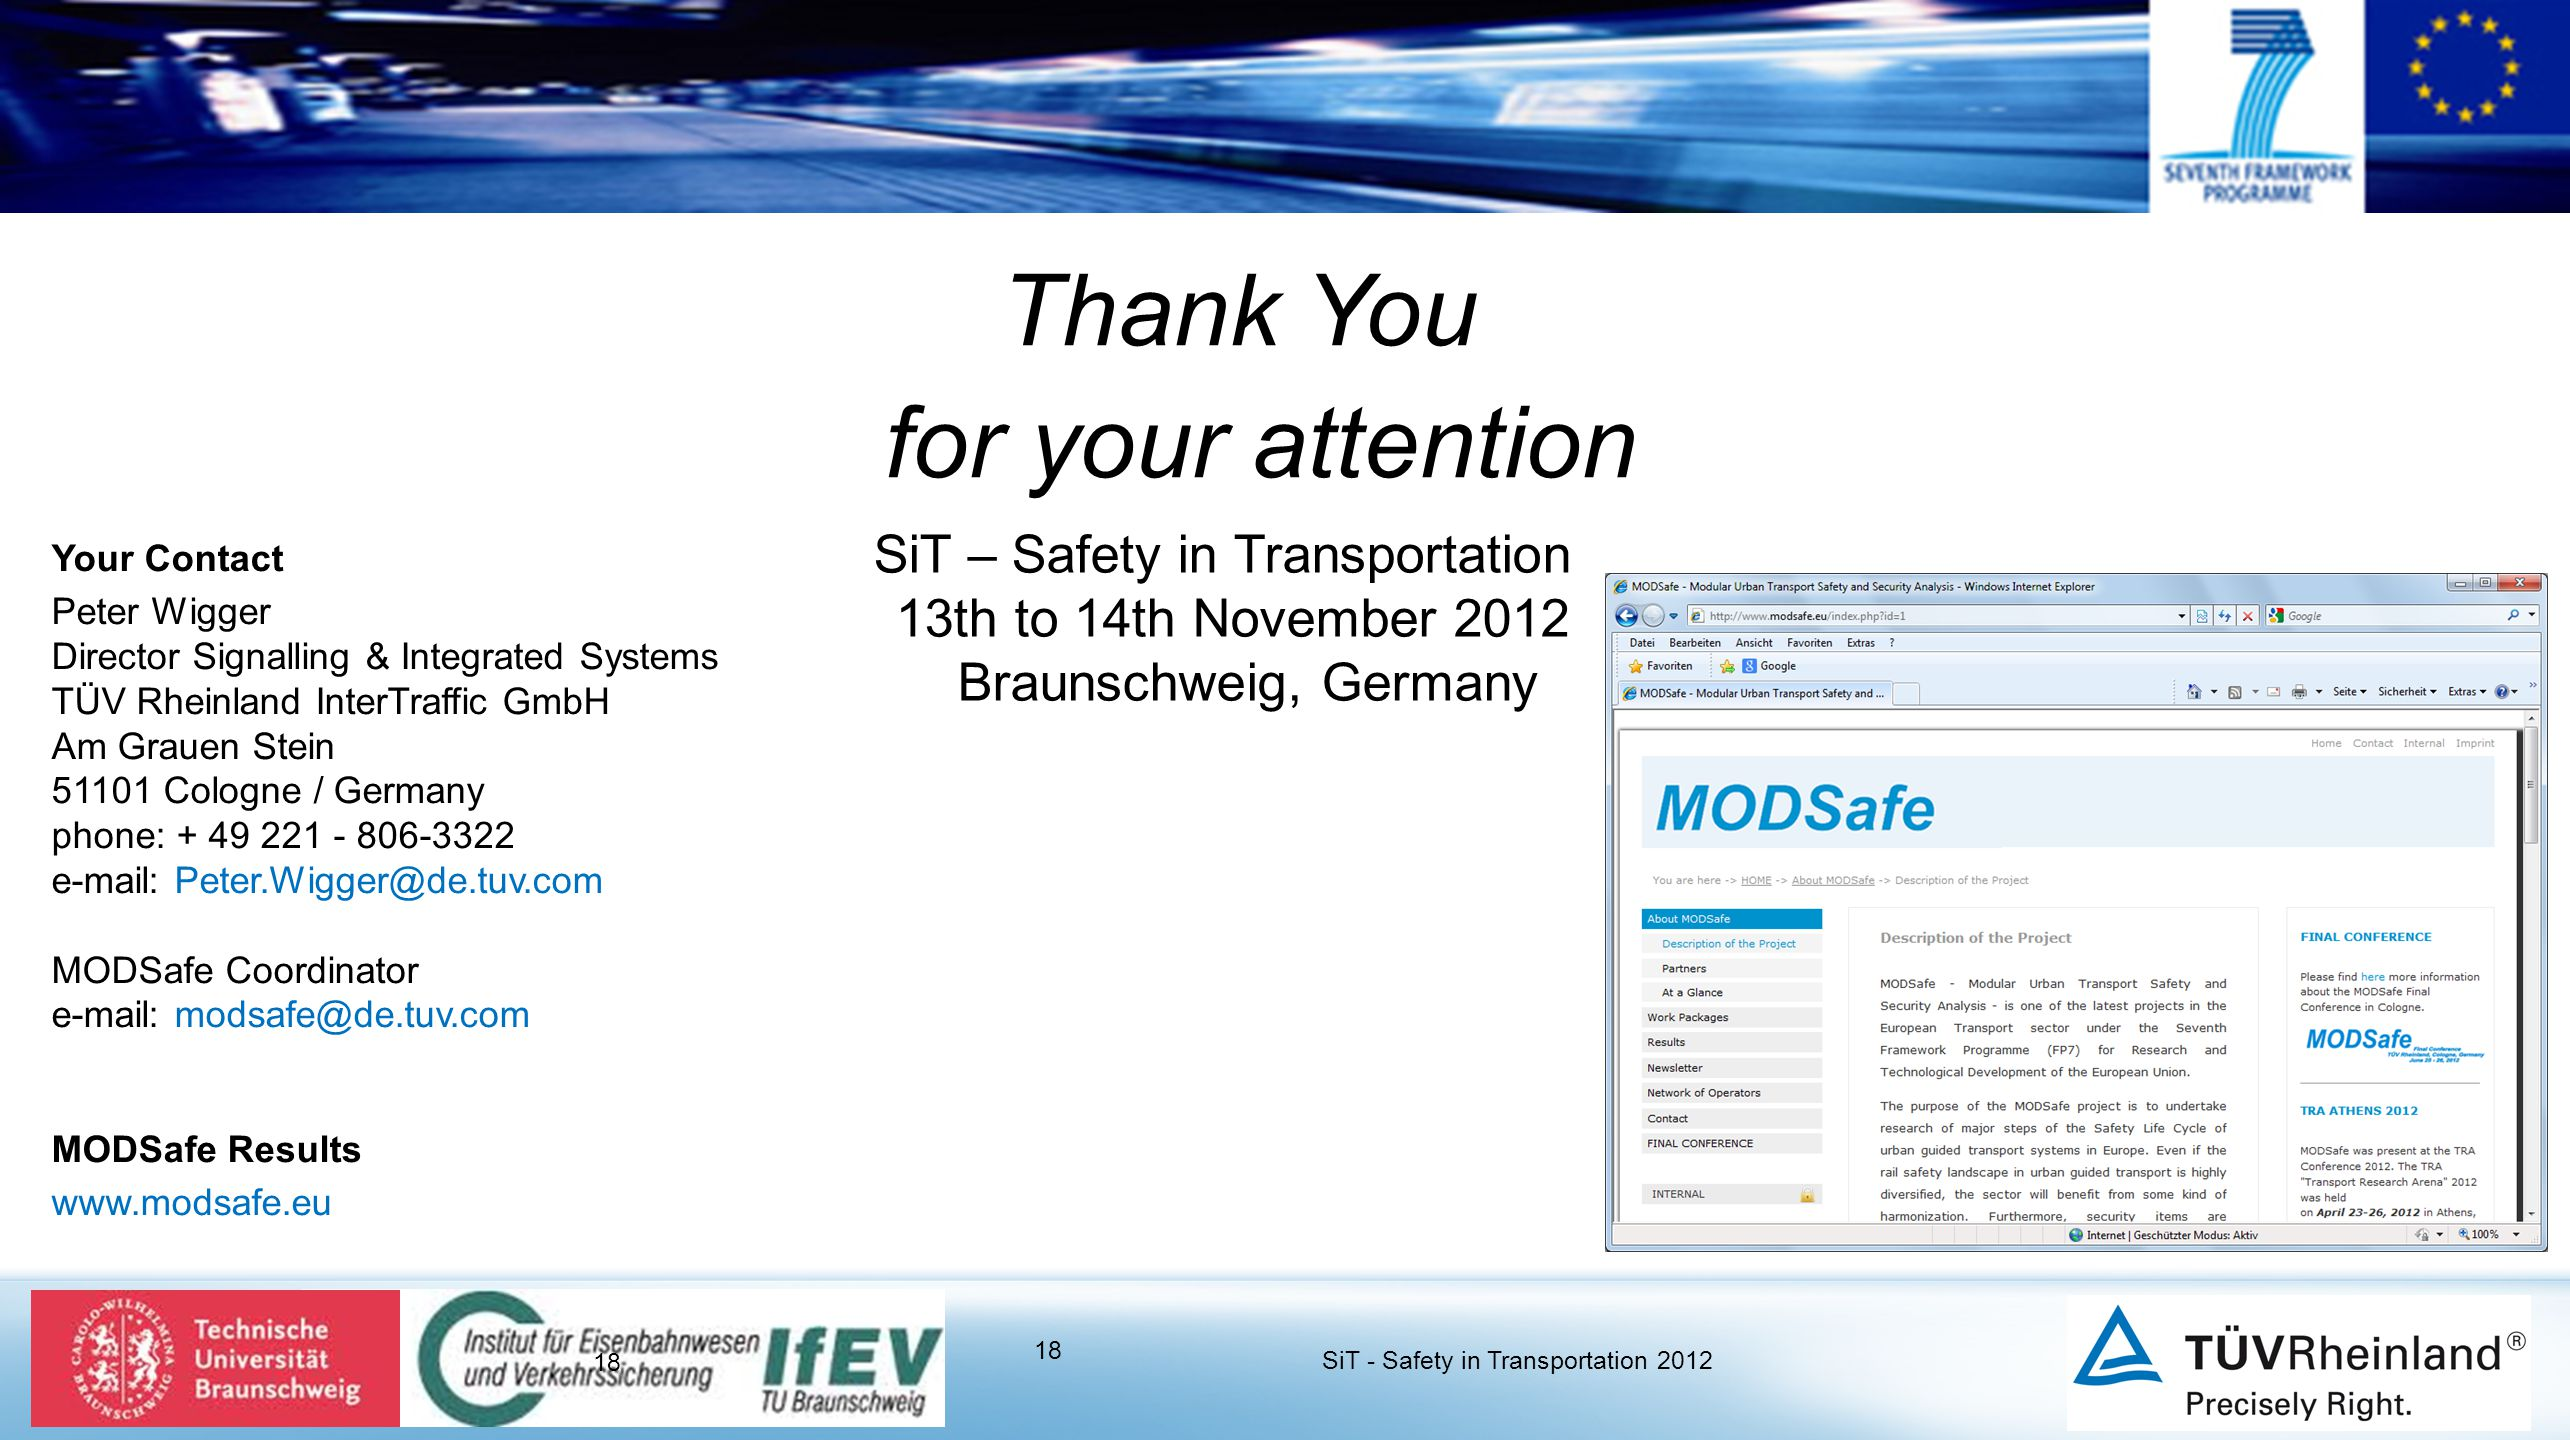 18 Thank You for your attention SiT – Safety in Transportation 13th to 14th November 2012 Braunschweig, Germany 18 SiT - Safety in Transportation 2012 Your Contact Peter Wigger Director Signalling & Integrated Systems TÜV Rheinland InterTraffic GmbH Am Grauen Stein 51101 Cologne / Germany phone: + 49 221 - 806-3322 e-mail: Peter.Wigger@de.tuv.com MODSafe Coordinator e-mail: modsafe@de.tuv.com MODSafe Results www.modsafe.eu